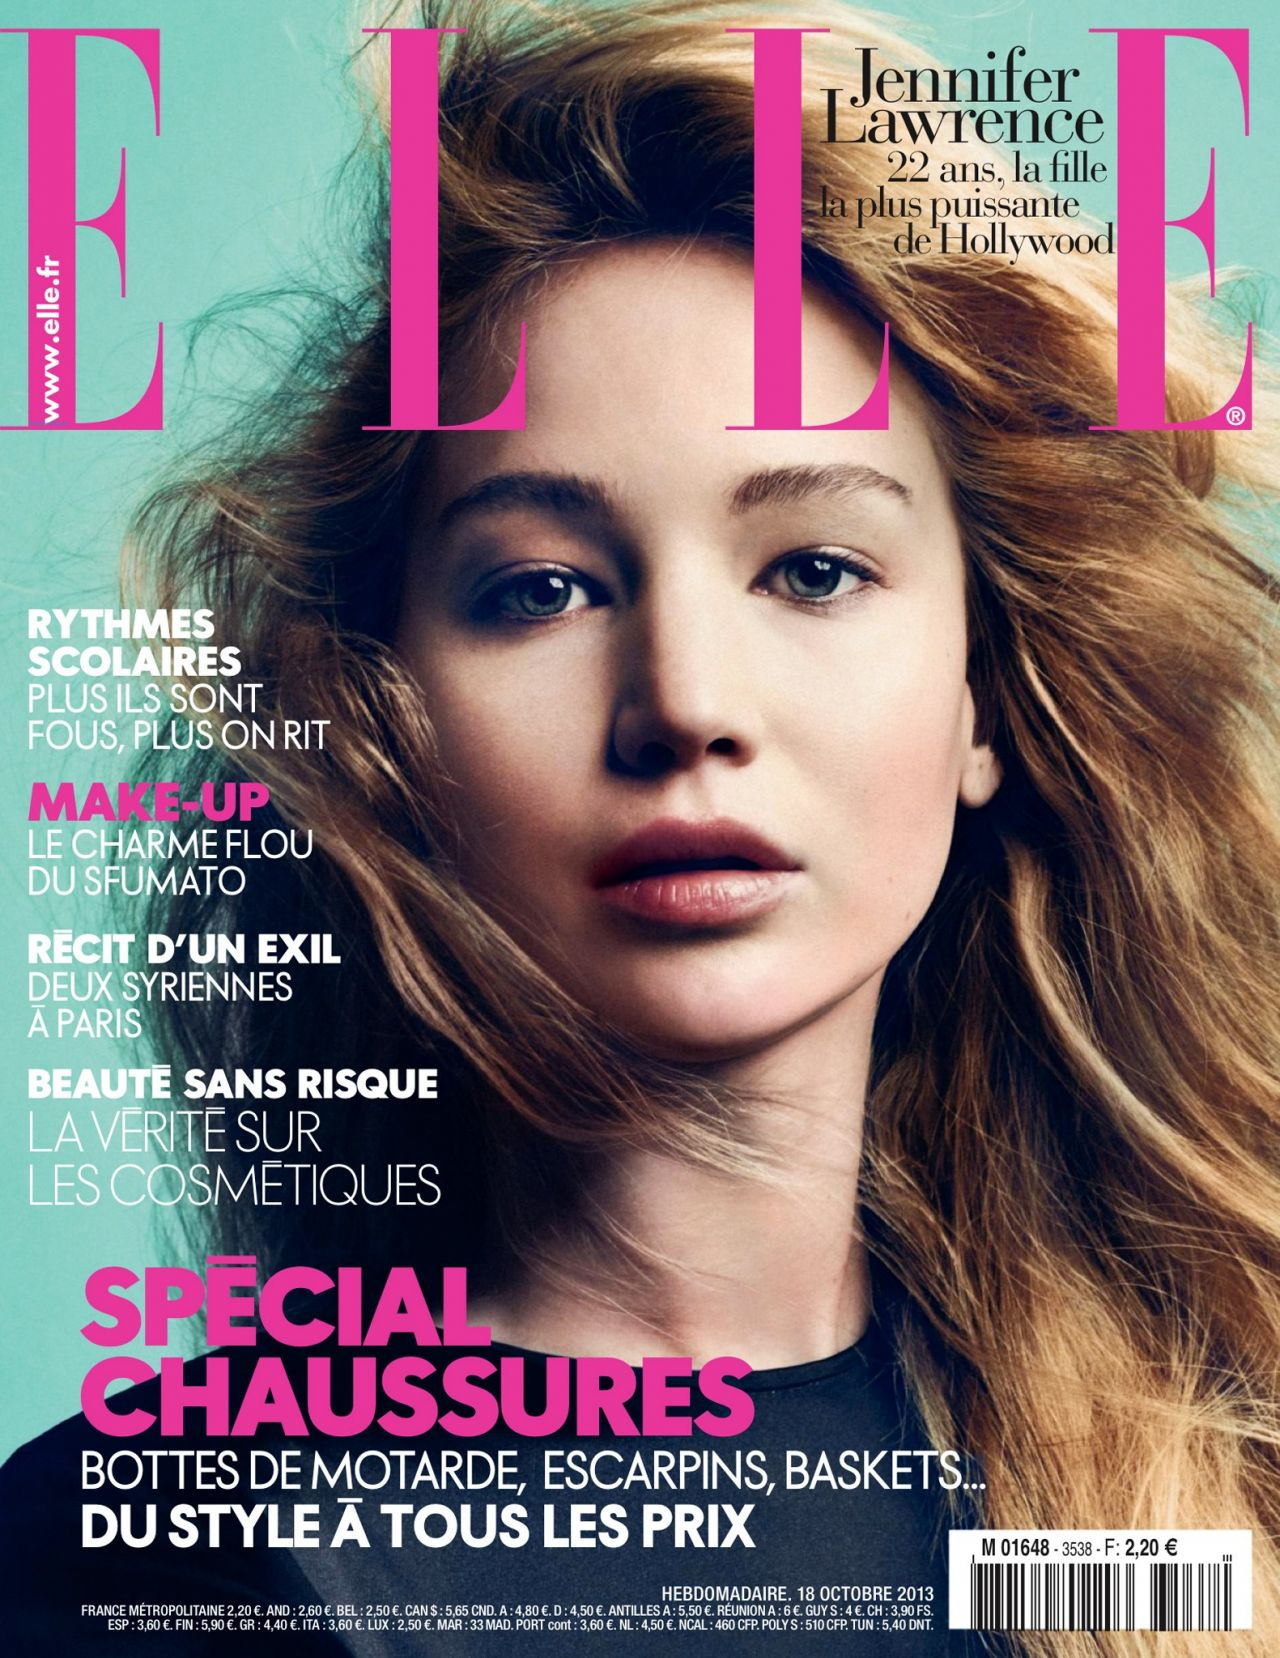 Jennifer Lawrence ELLE Magazine France Cover Girl - October 2013 Issue